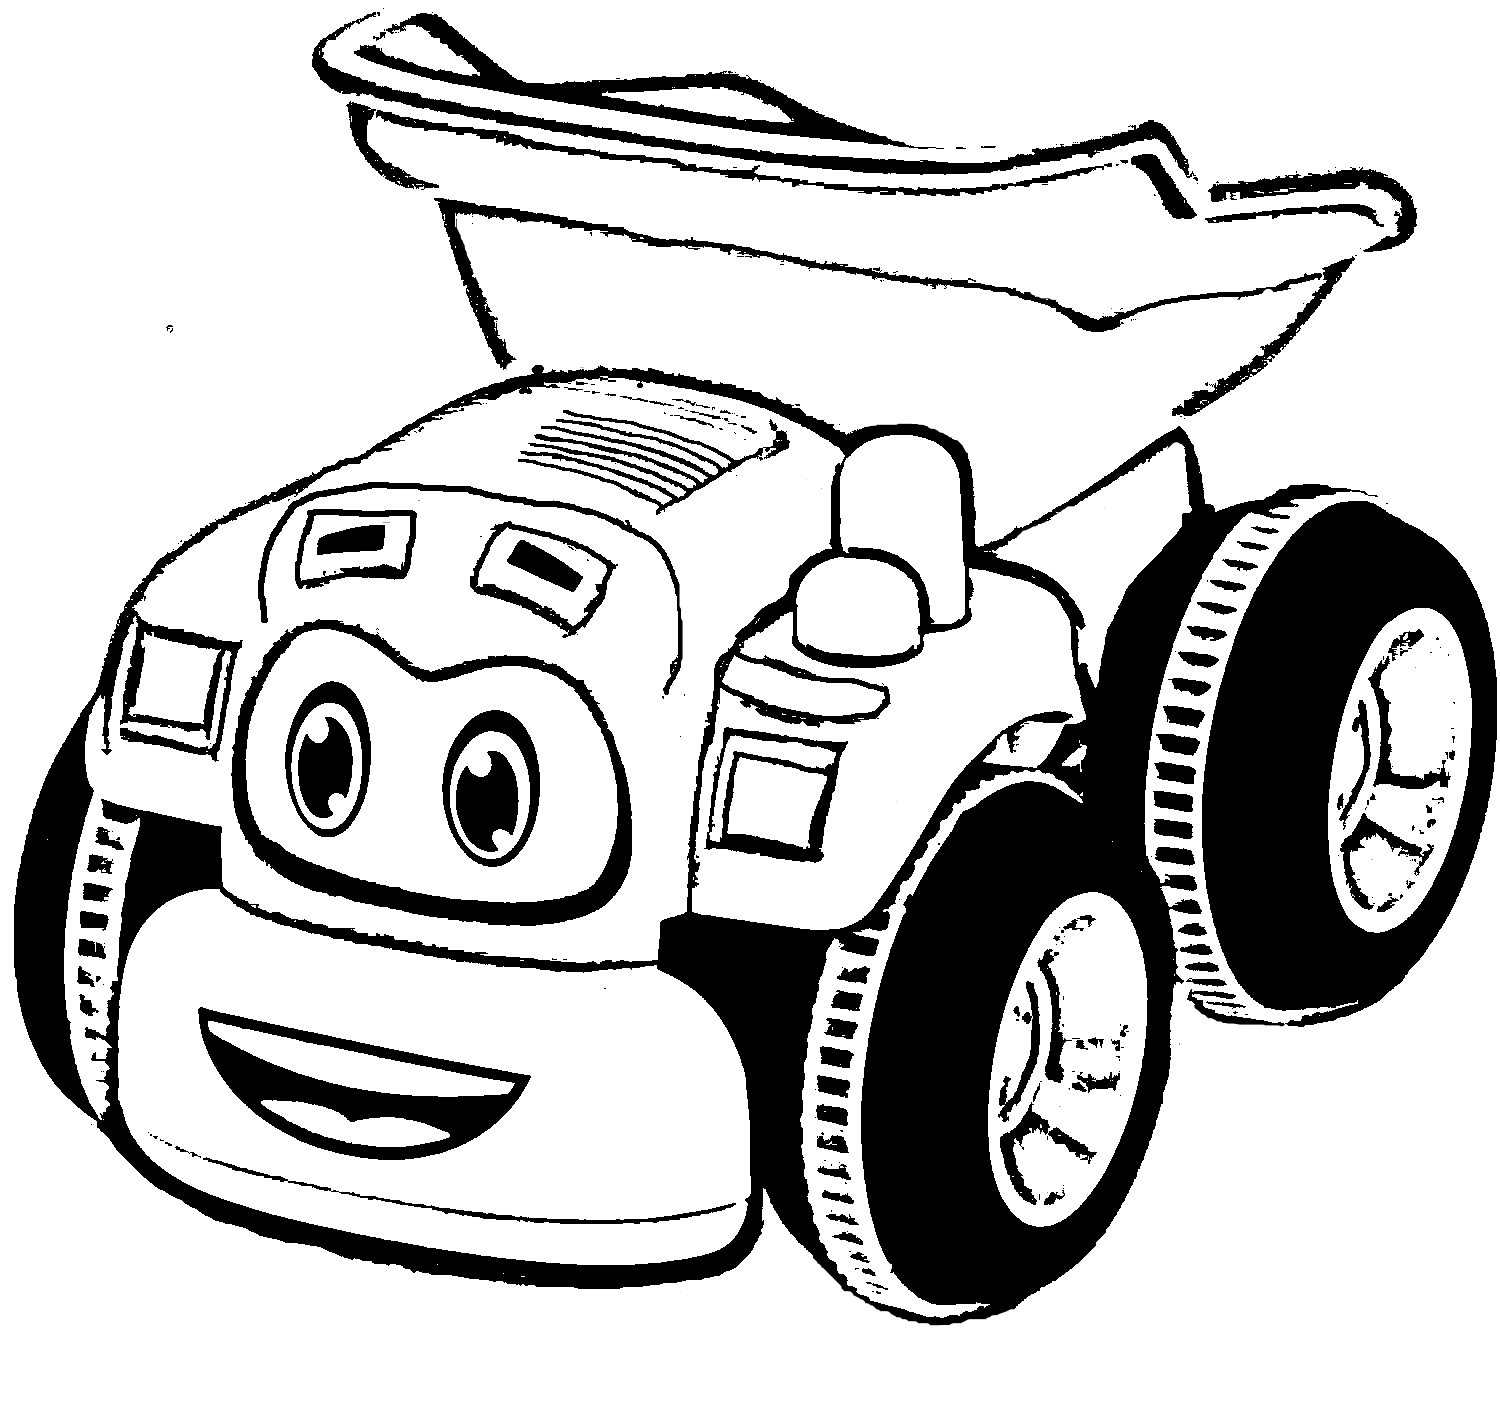 MOBIUS Toys coloring page